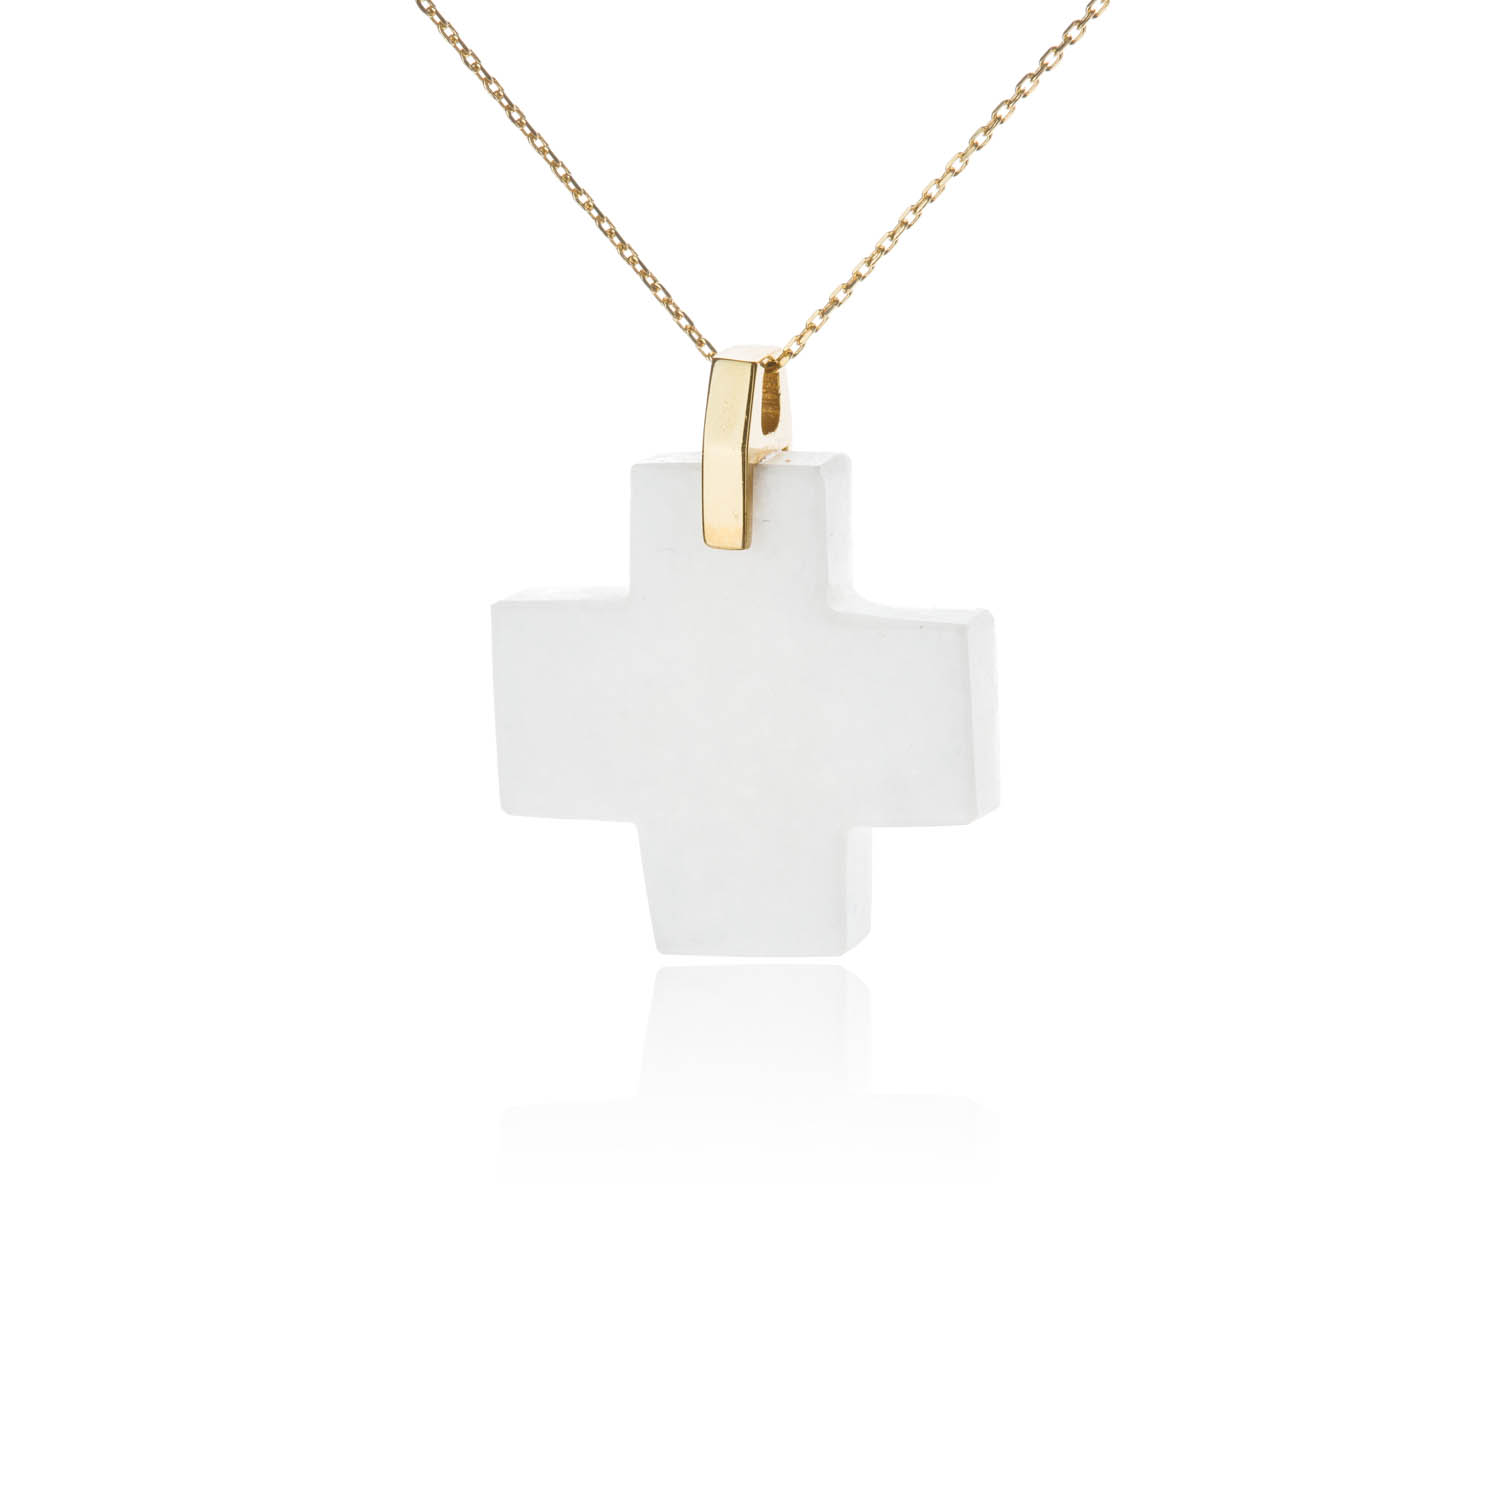 pendant gold cross pin woman zircon color letter square brand stainless necklace love steel fashion rose